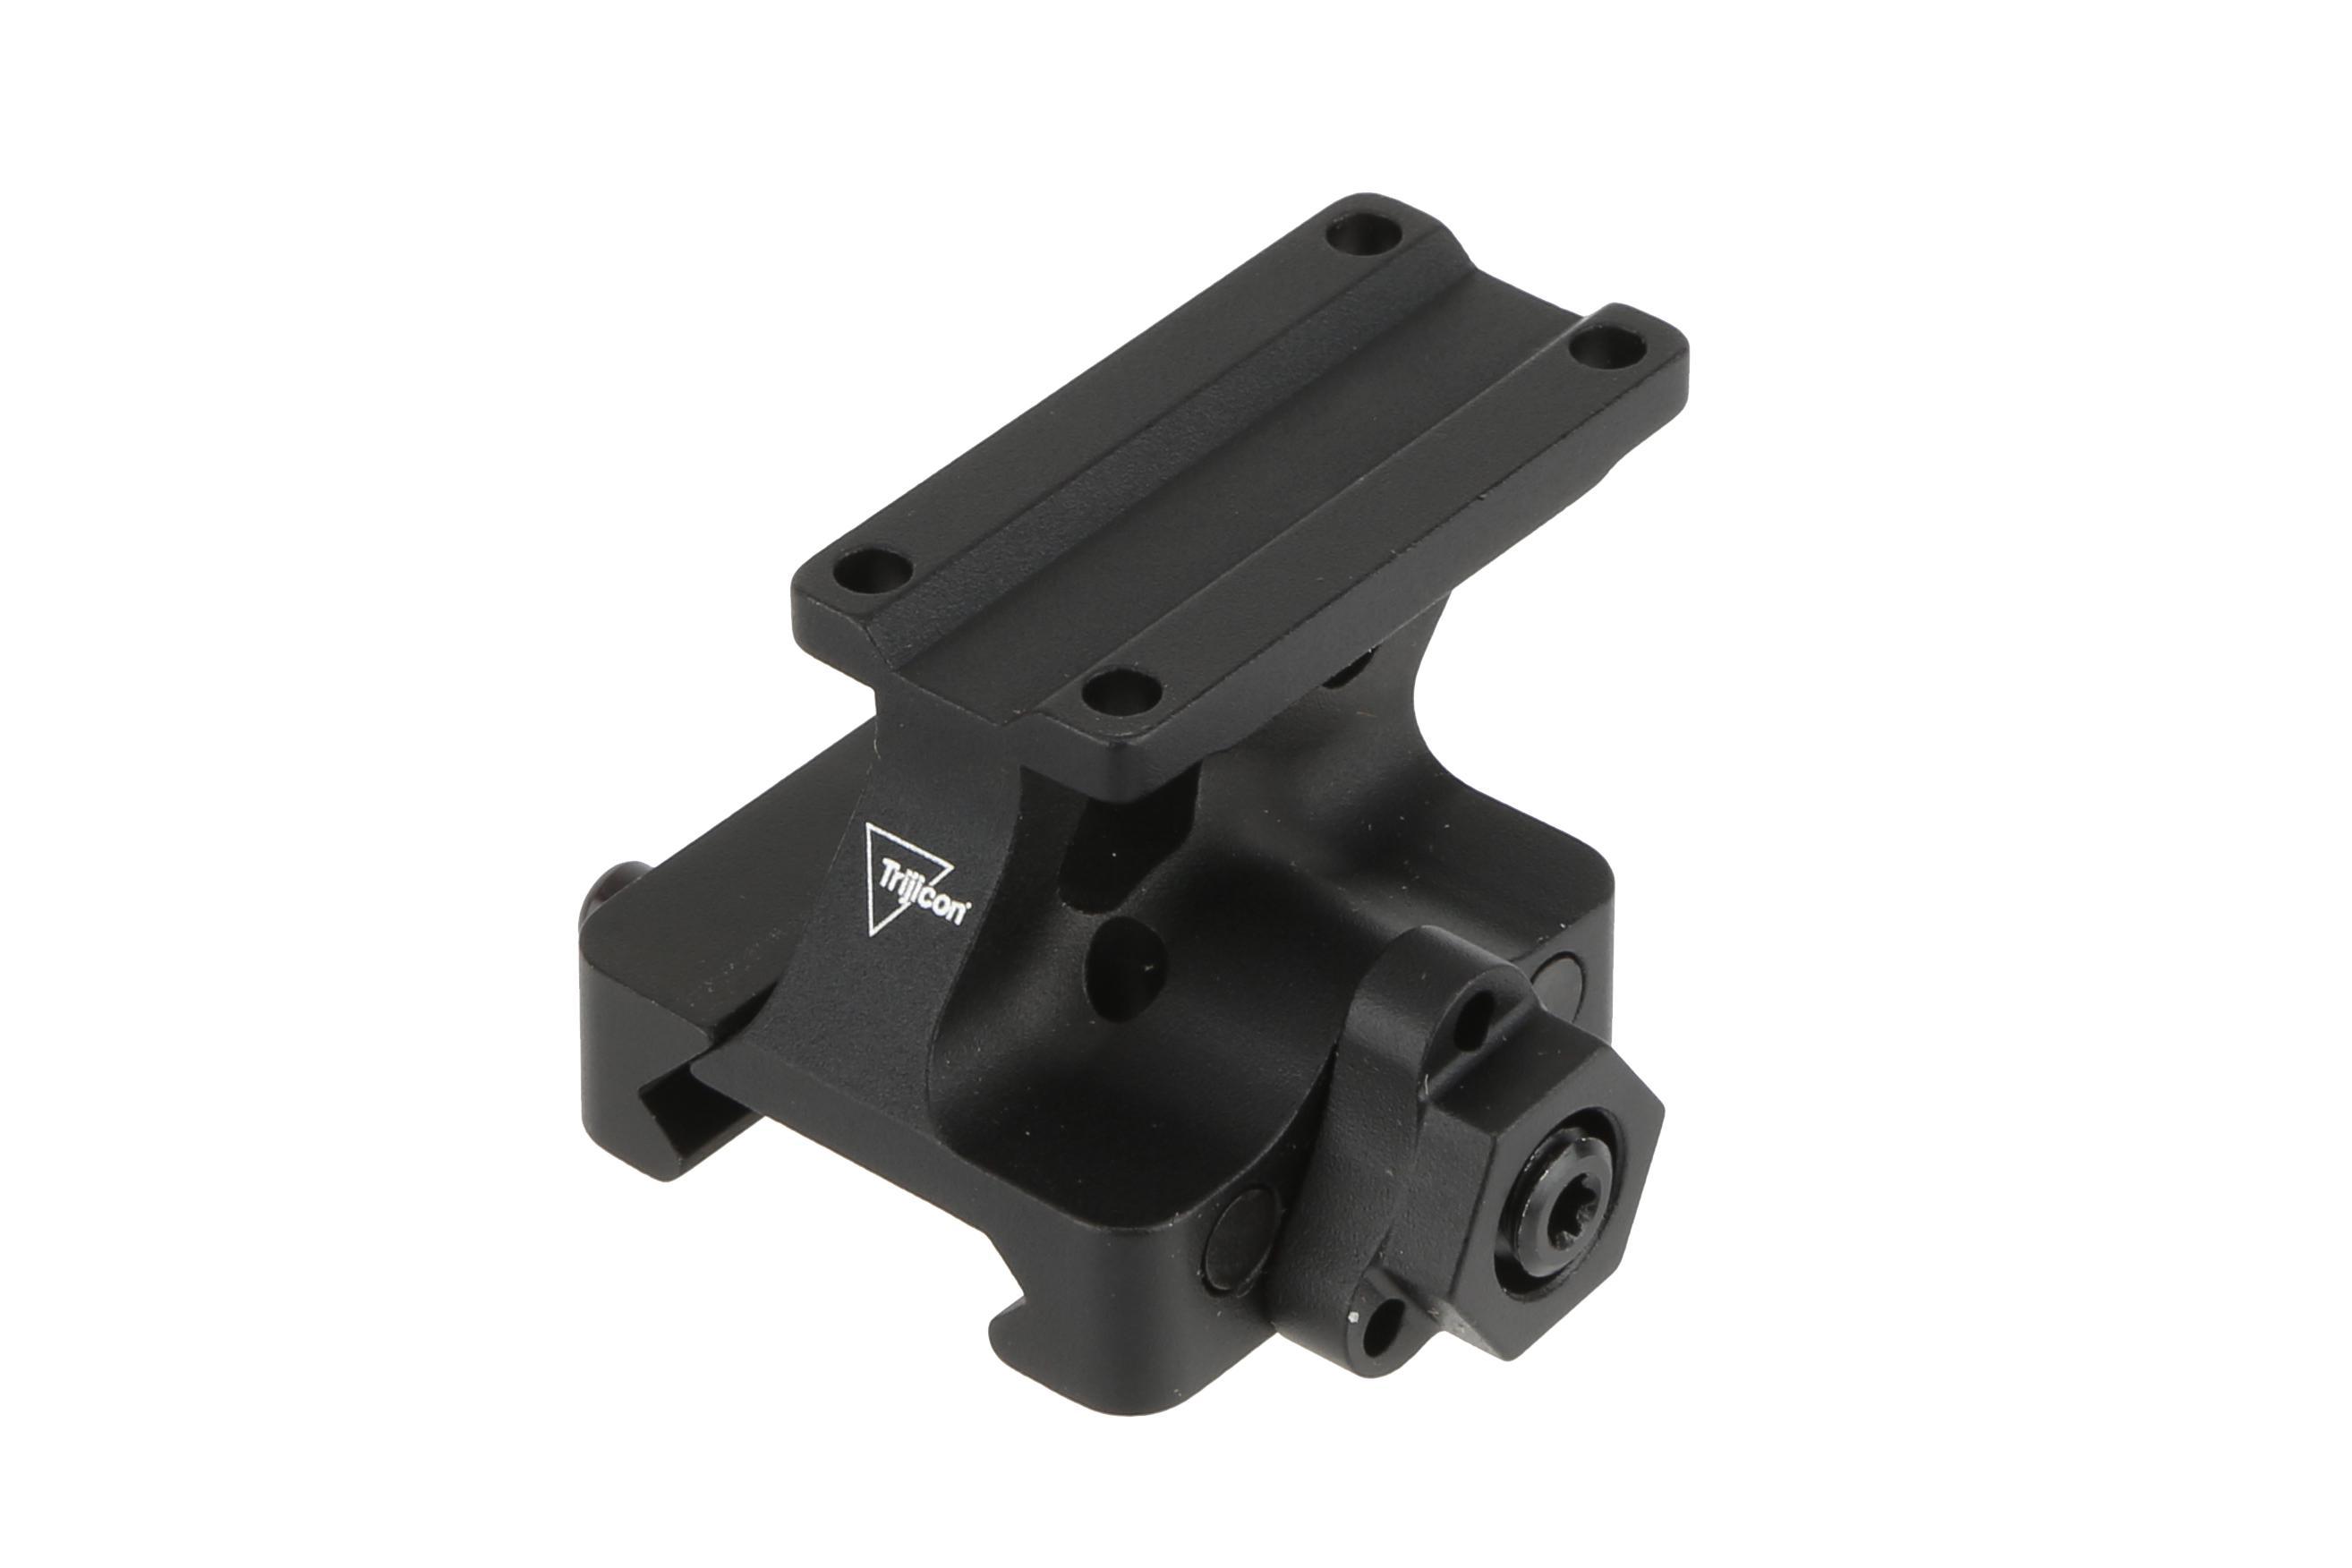 Trijicon MRO Full Co-Witness QR Mount